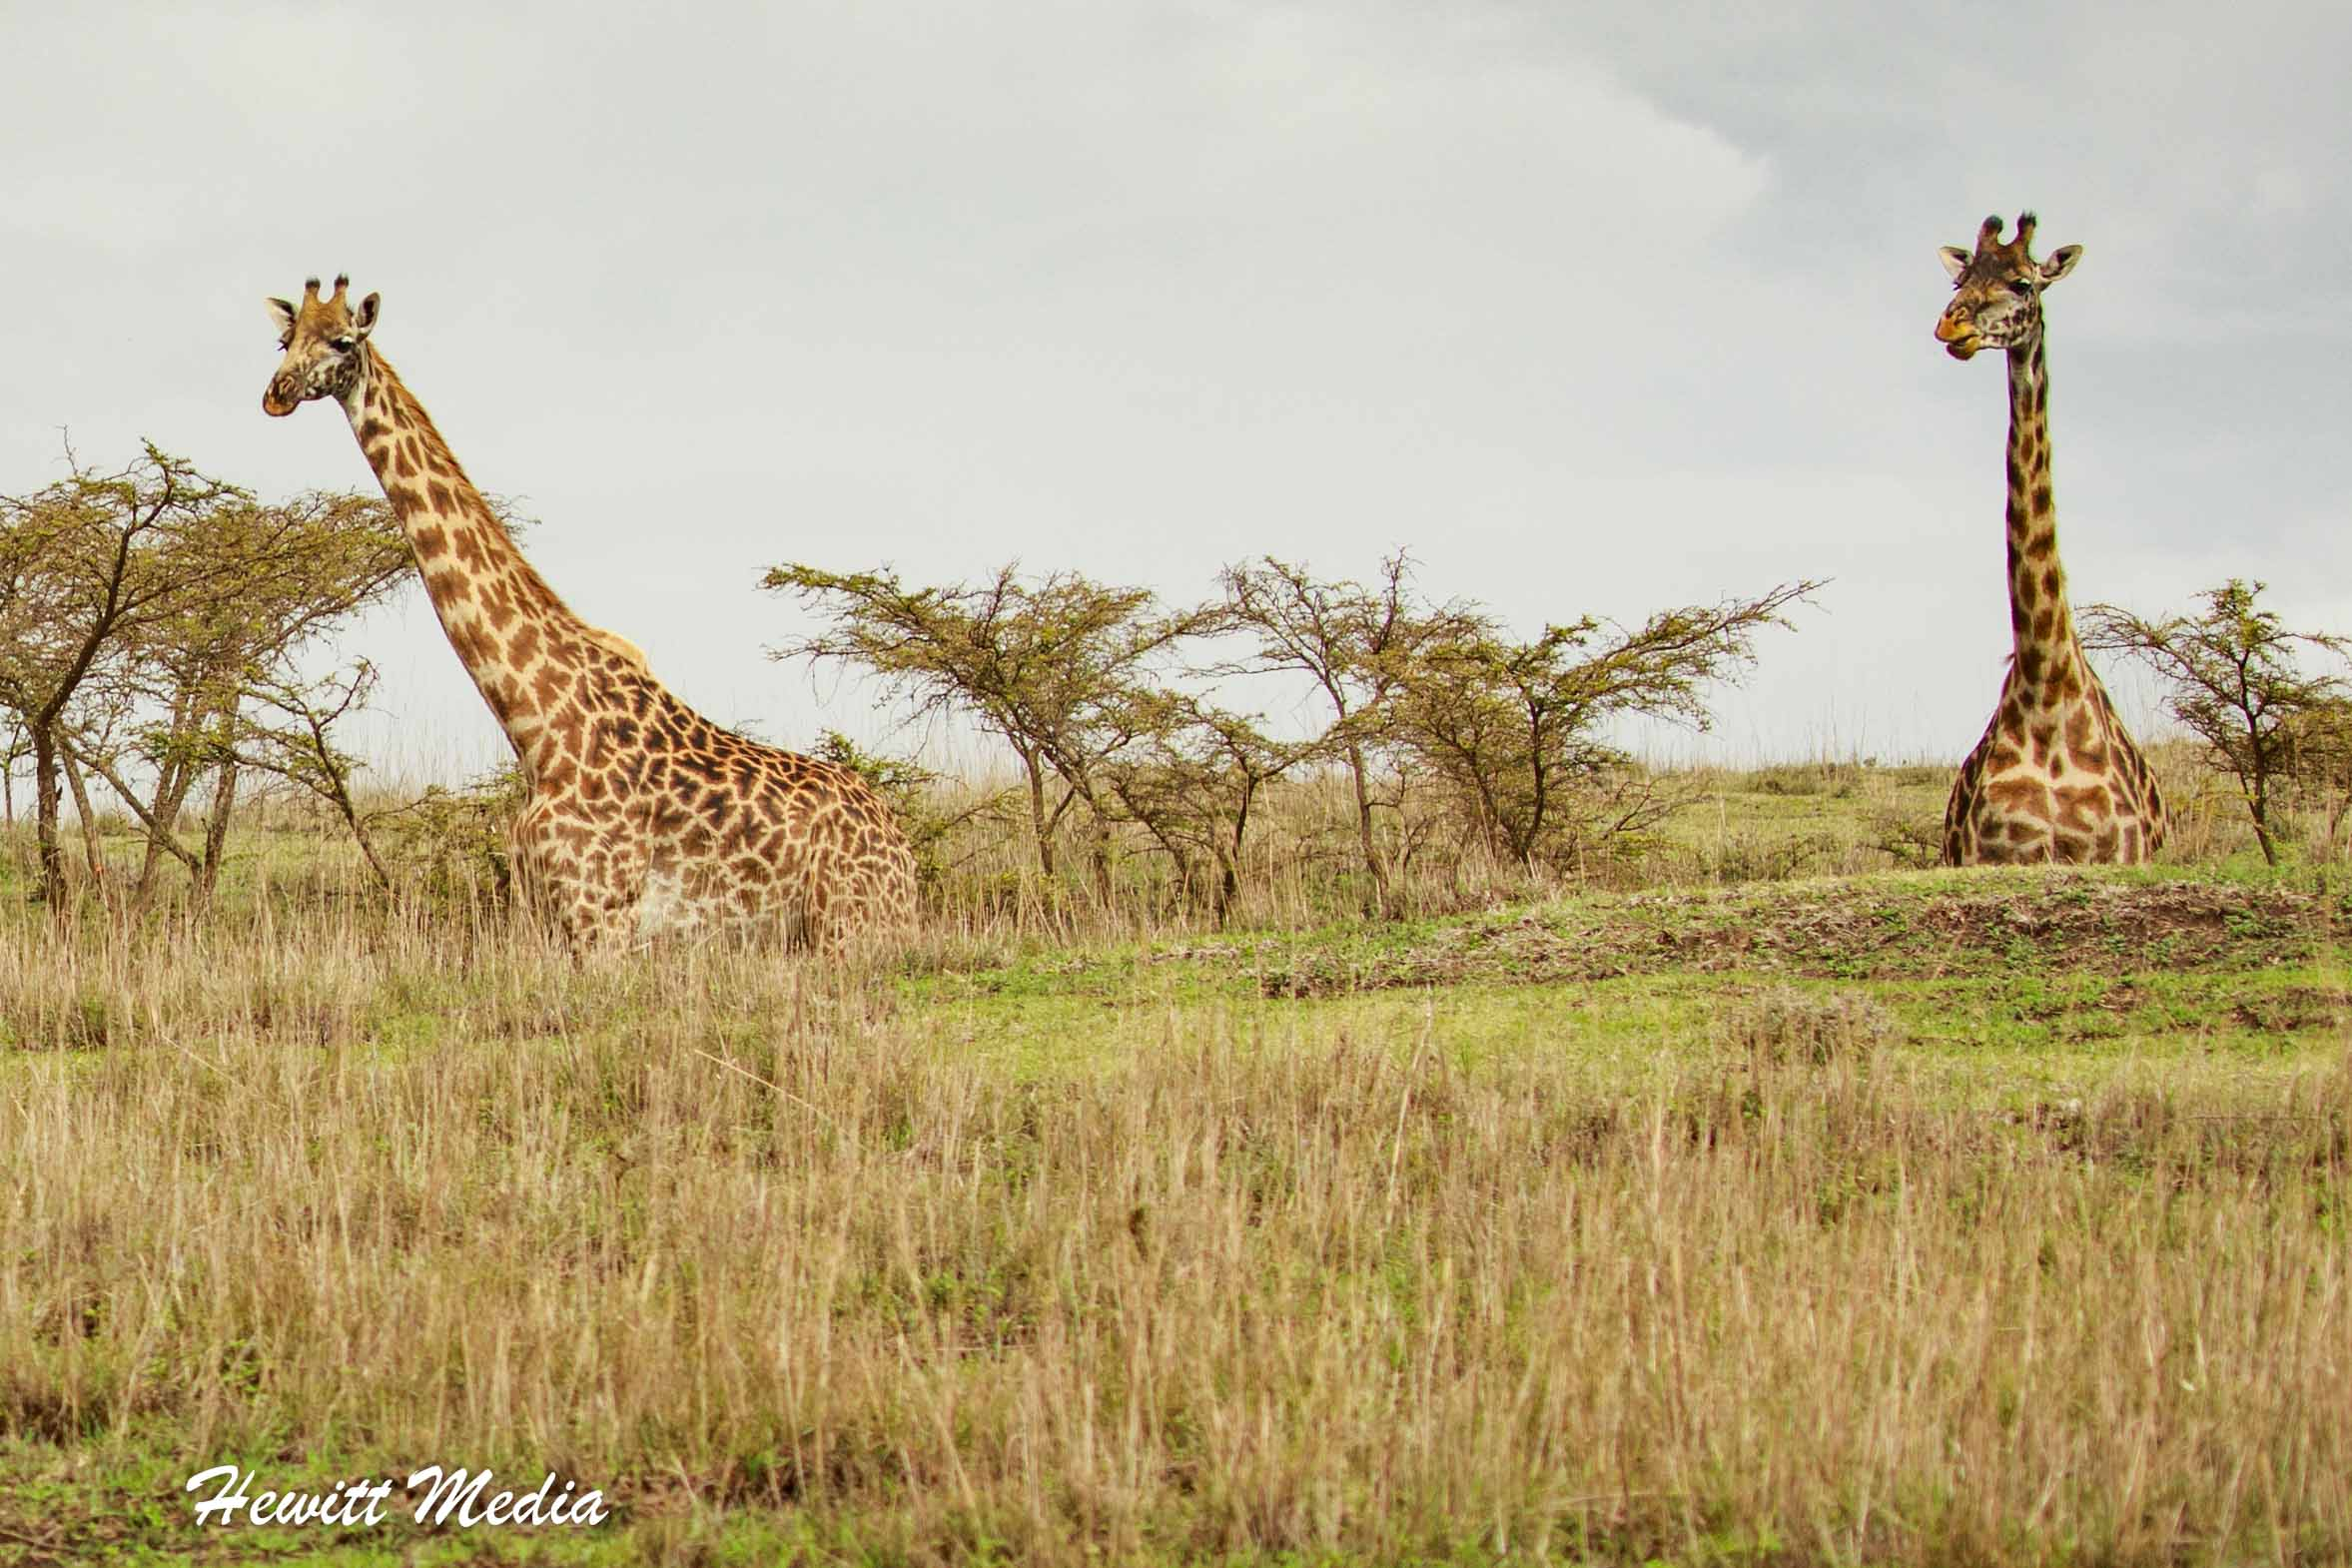 Giraffe feeding in the Serengeti National Park